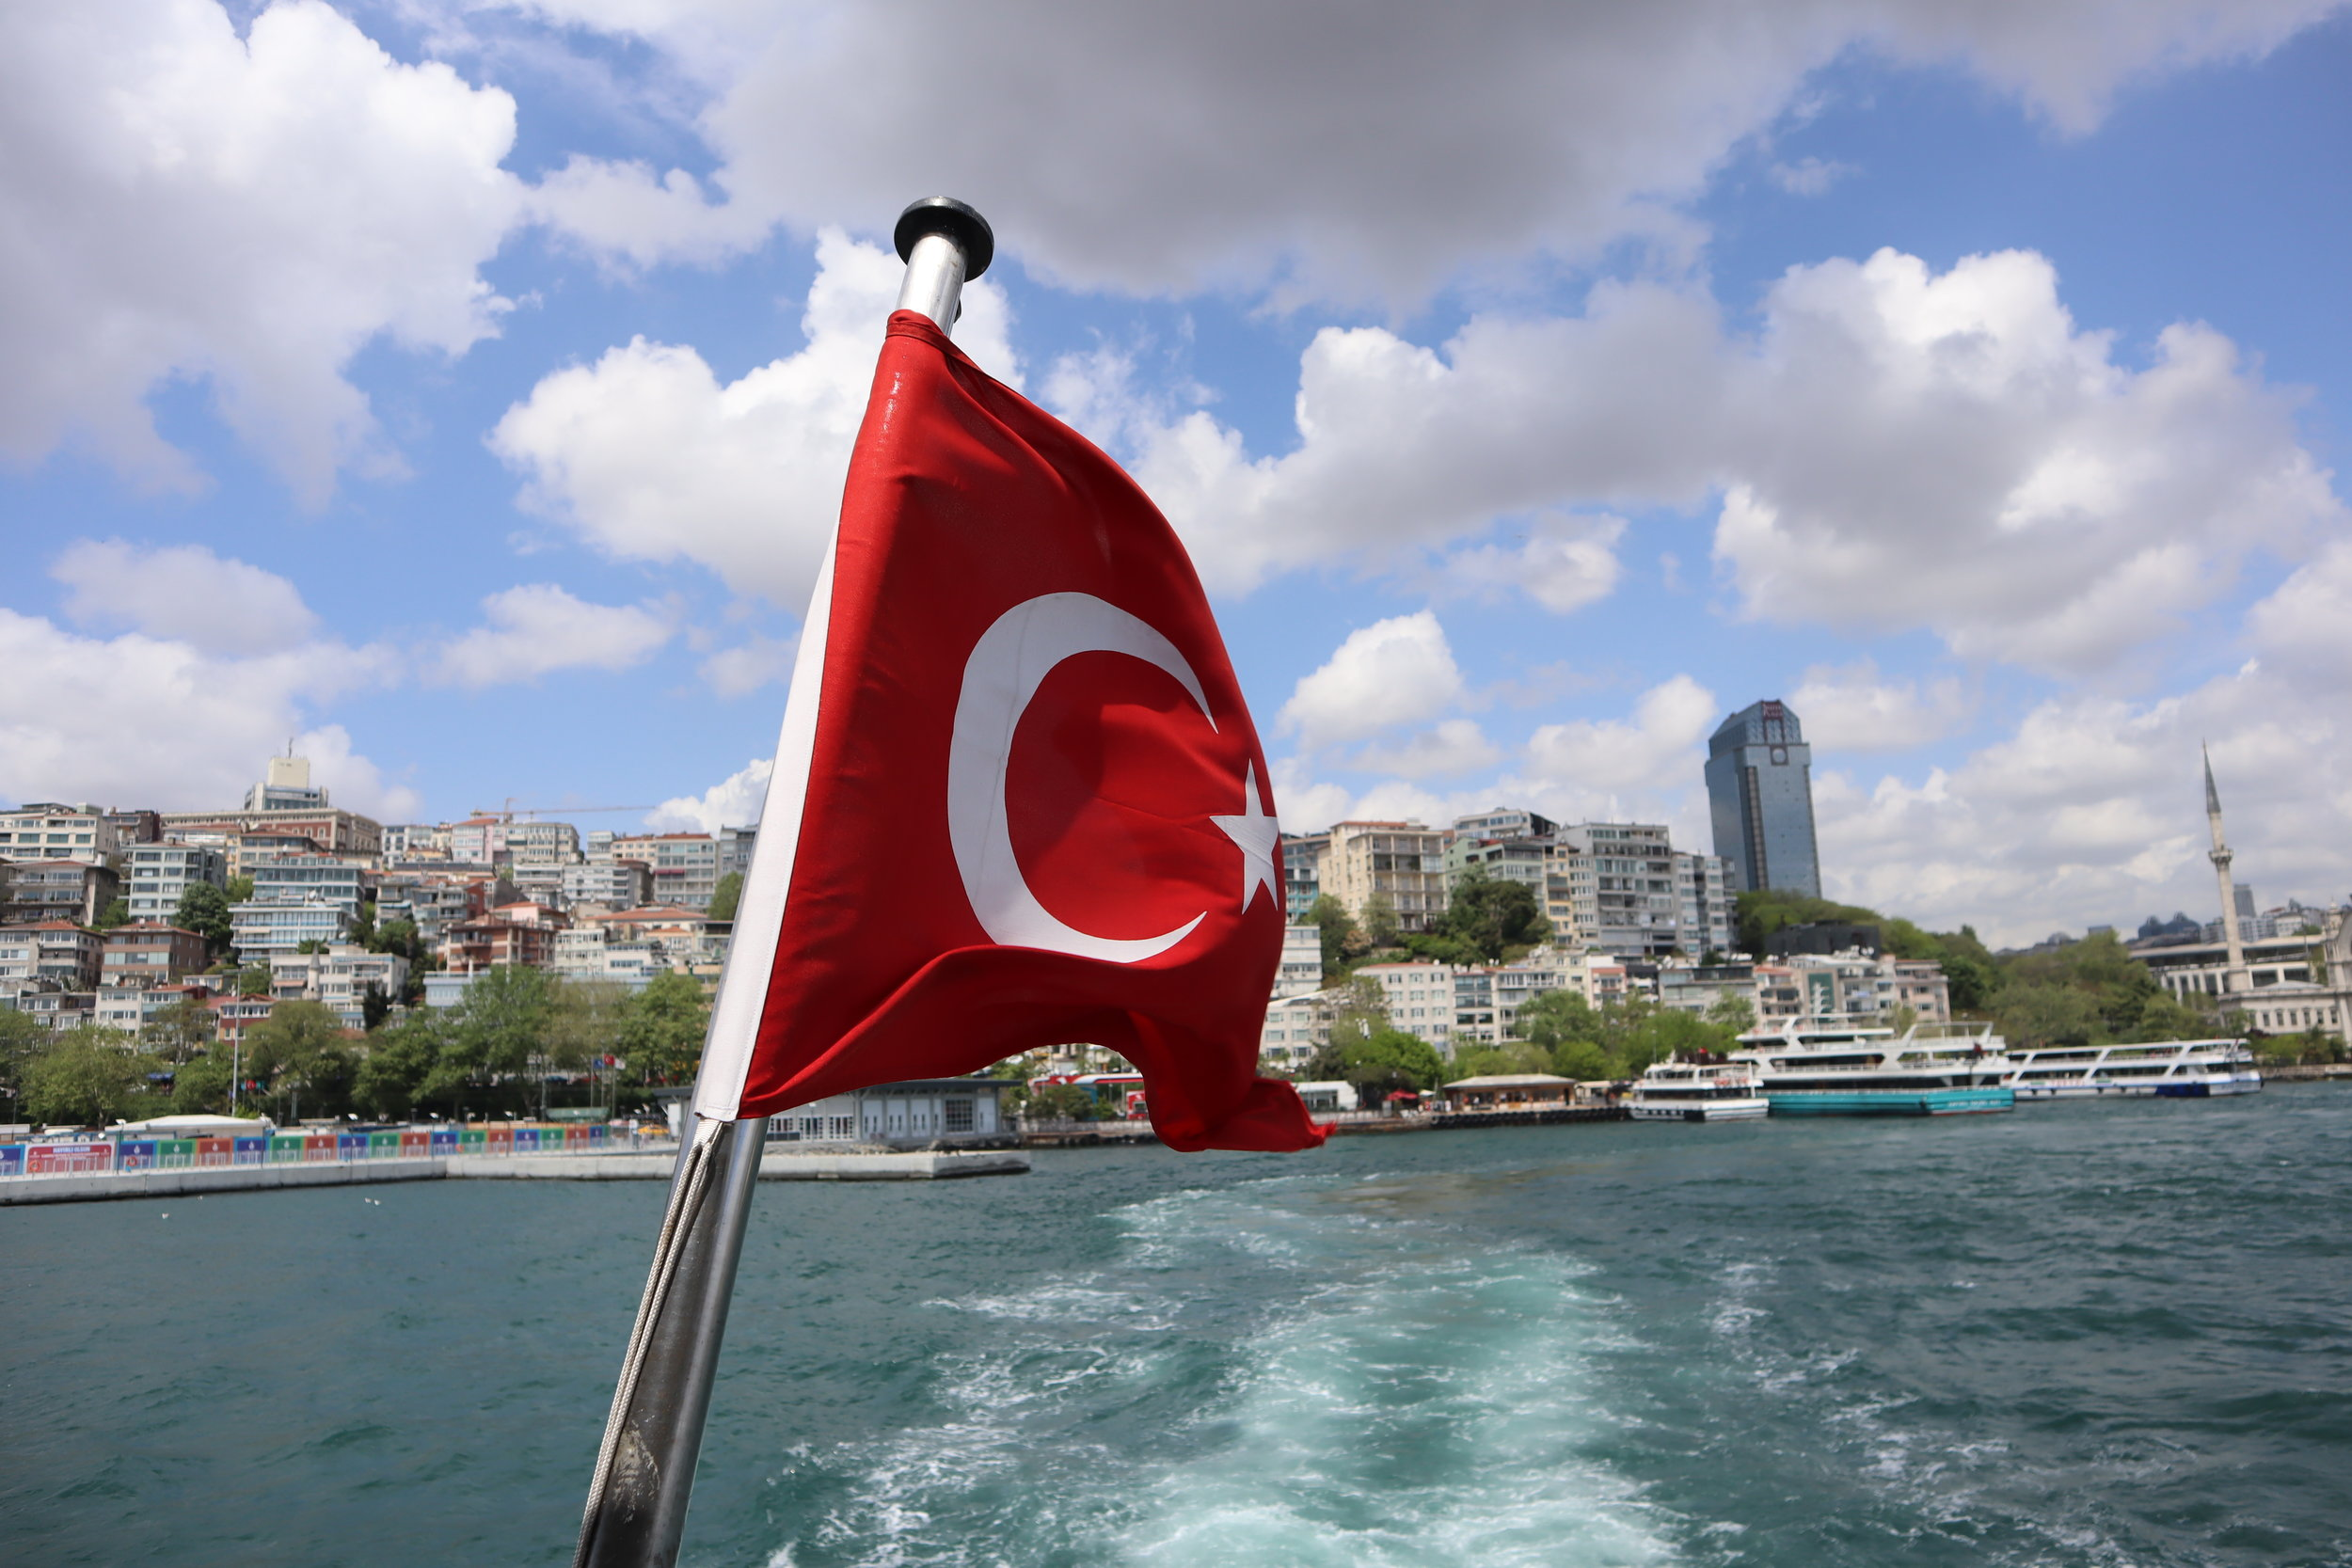 Crossing continents in Istanbul